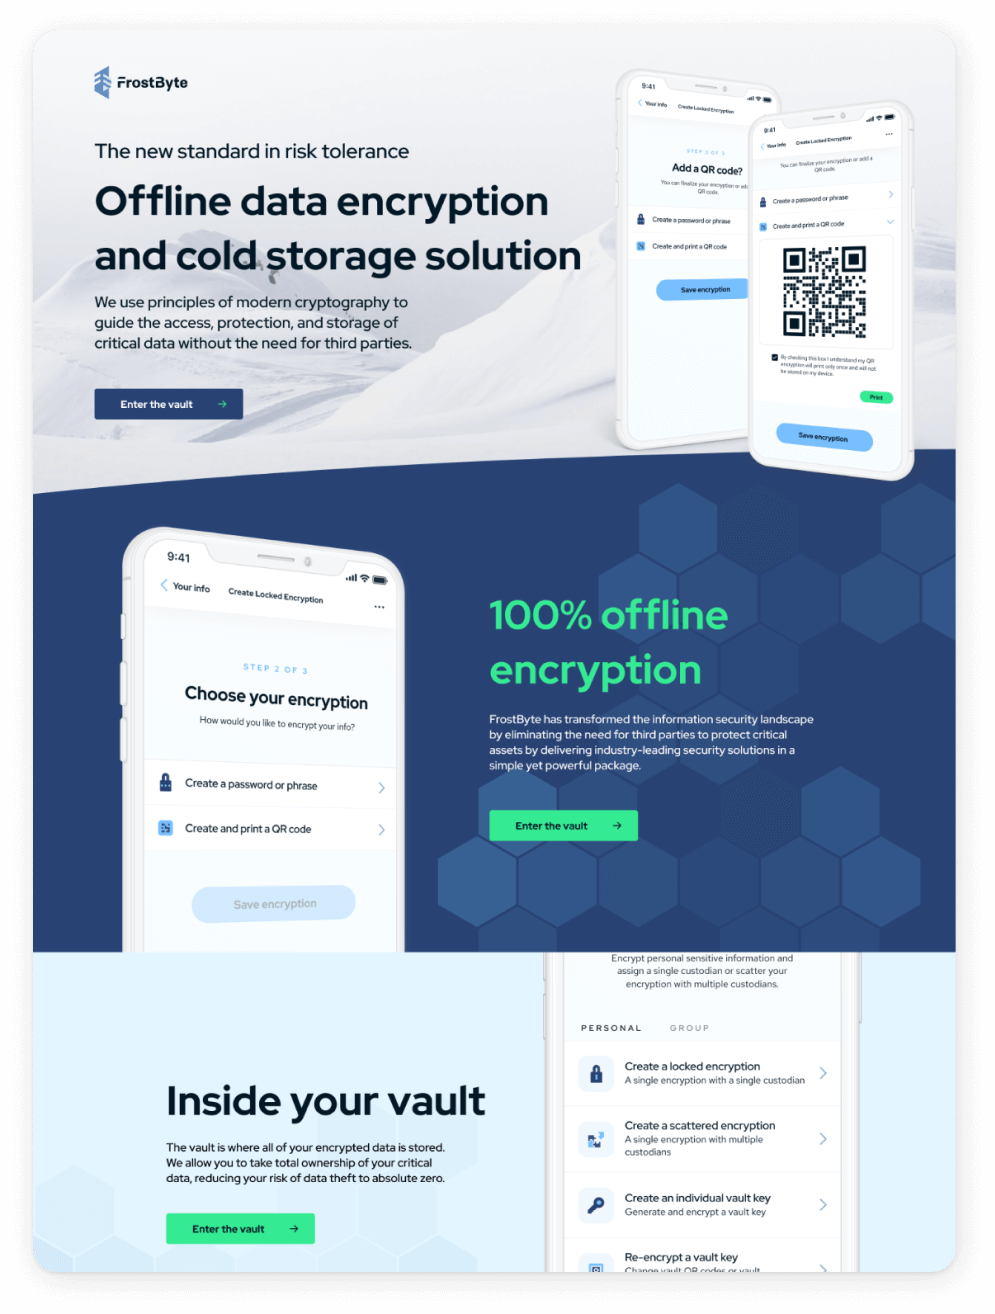 Home page of Frostbyte website